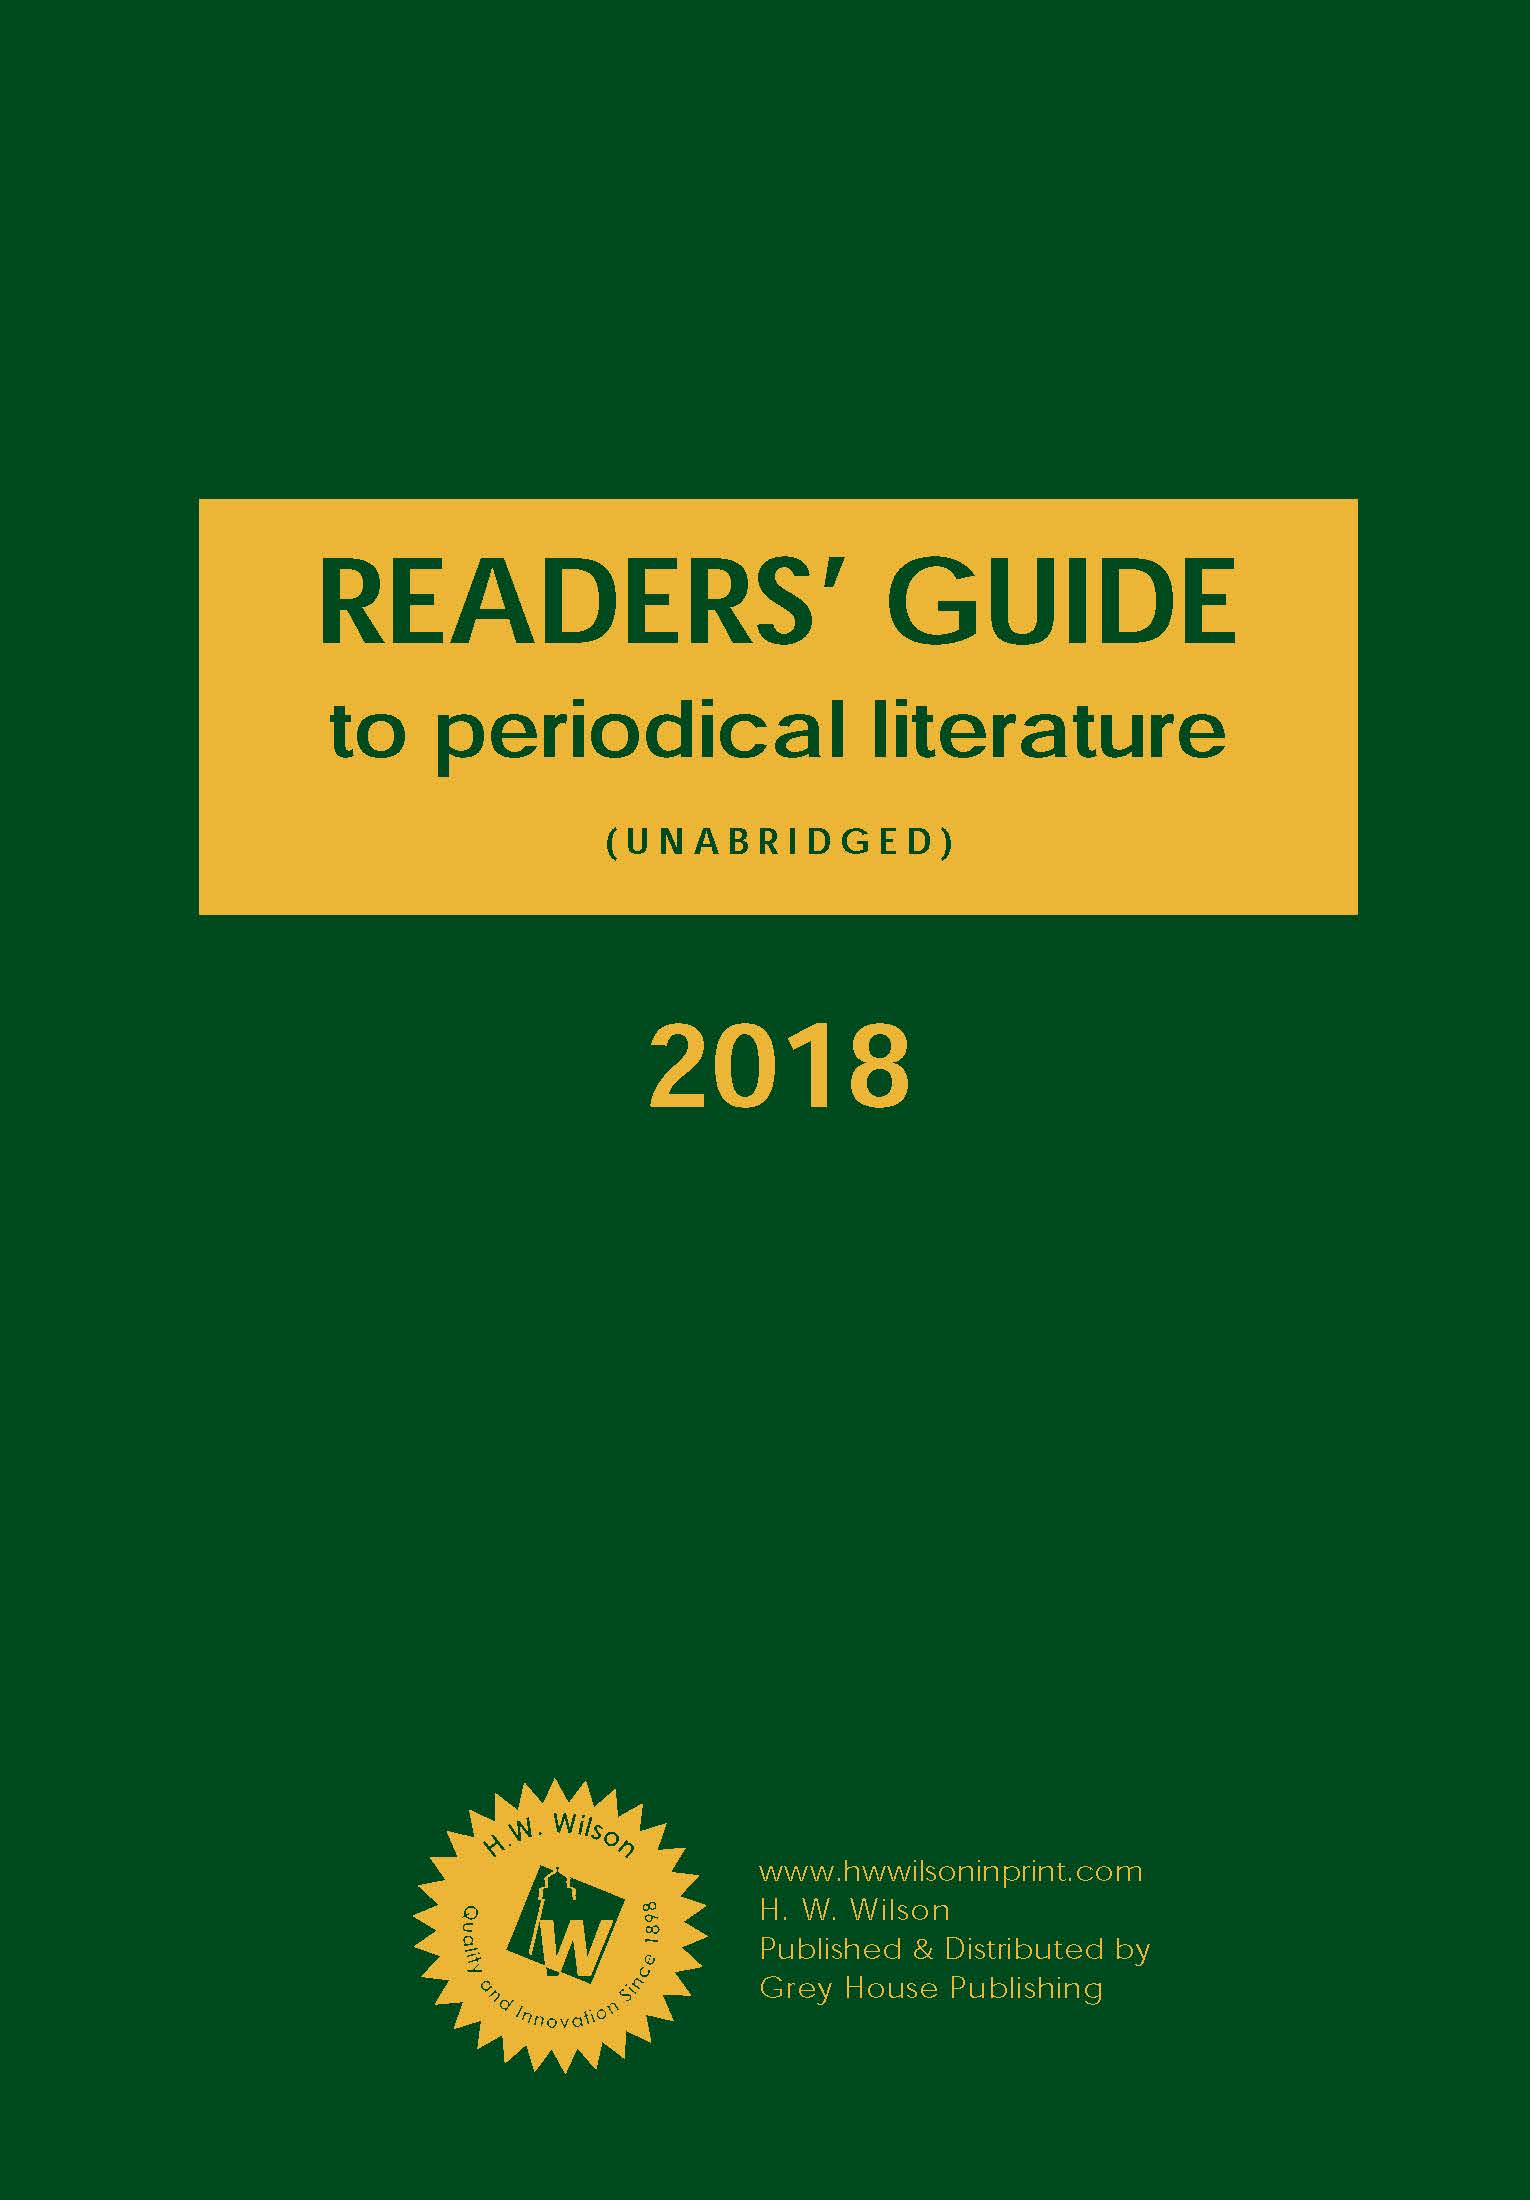 Reader's Guide to periodical literature